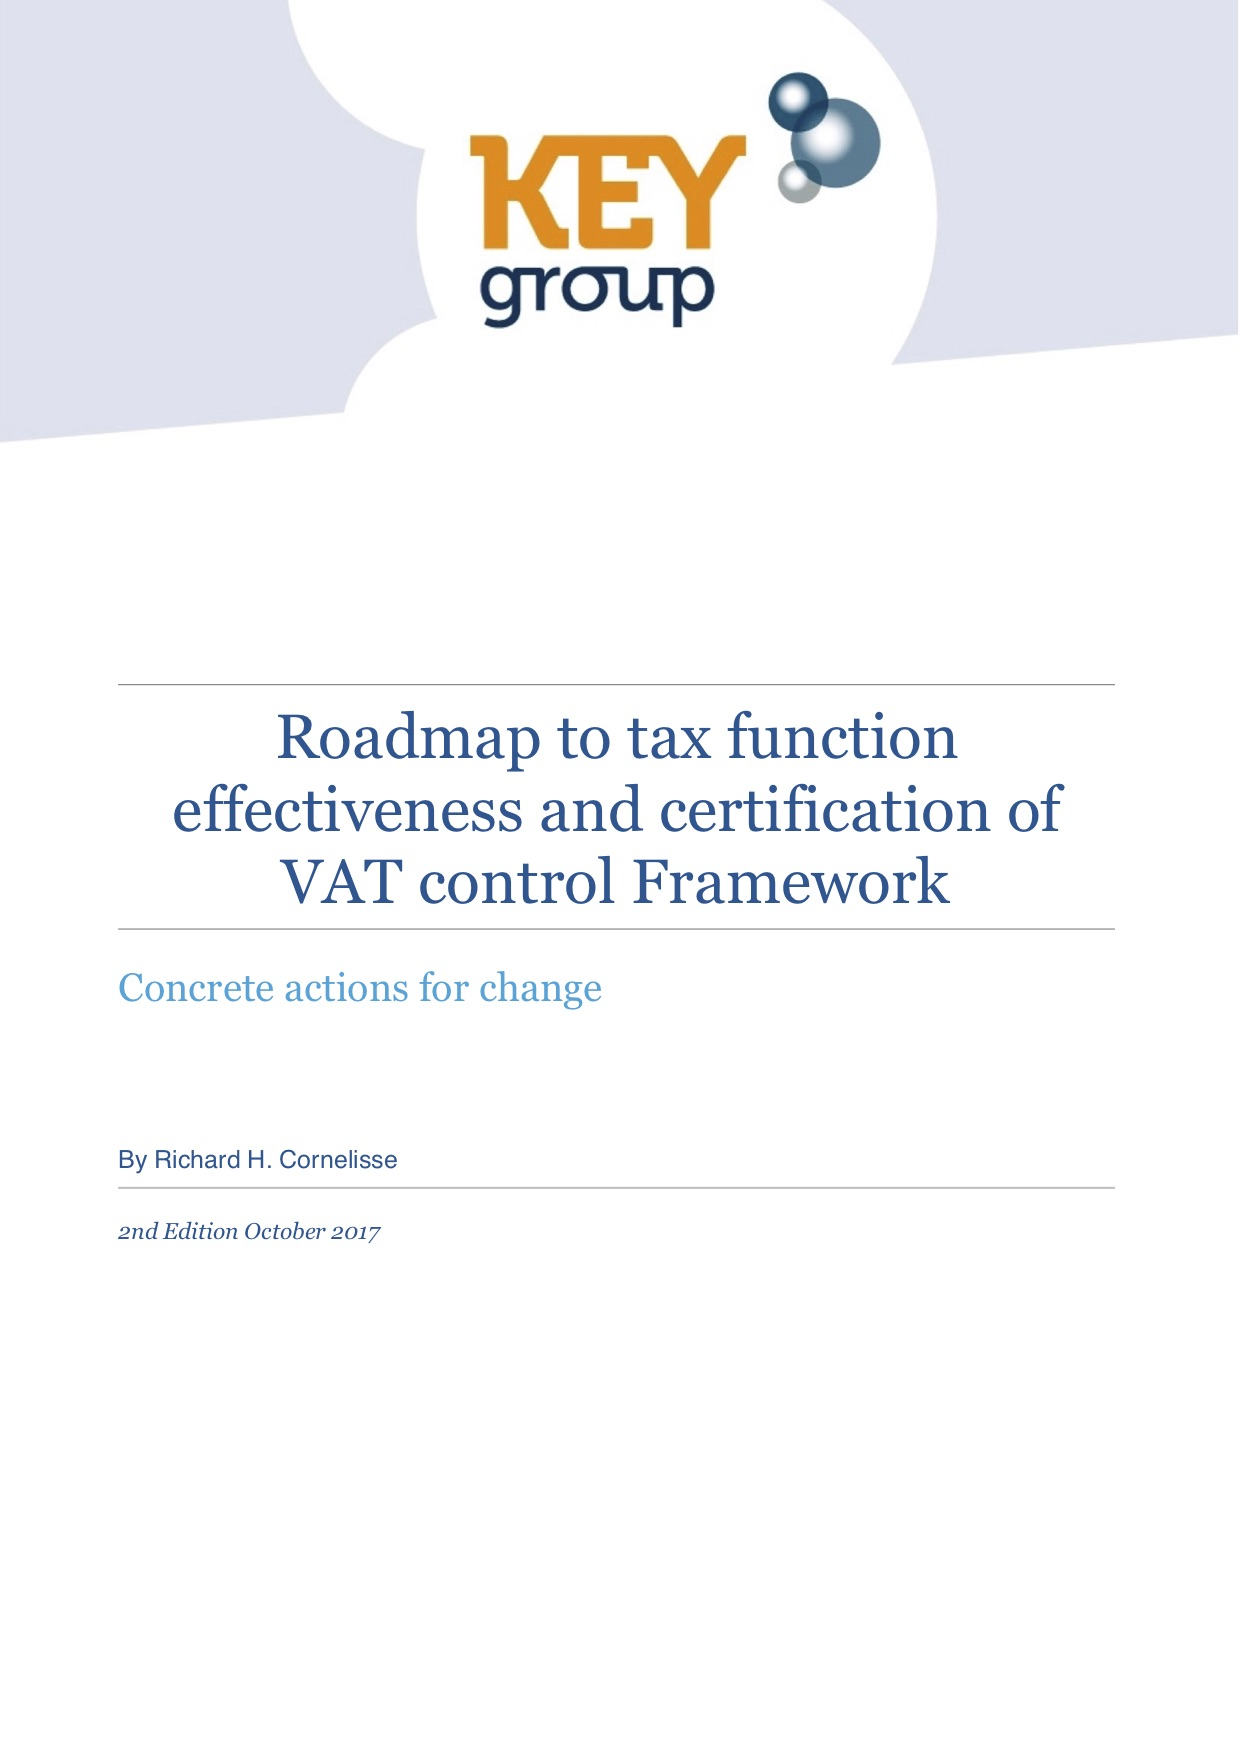 Roadmap to Tax and IT function effectiveness